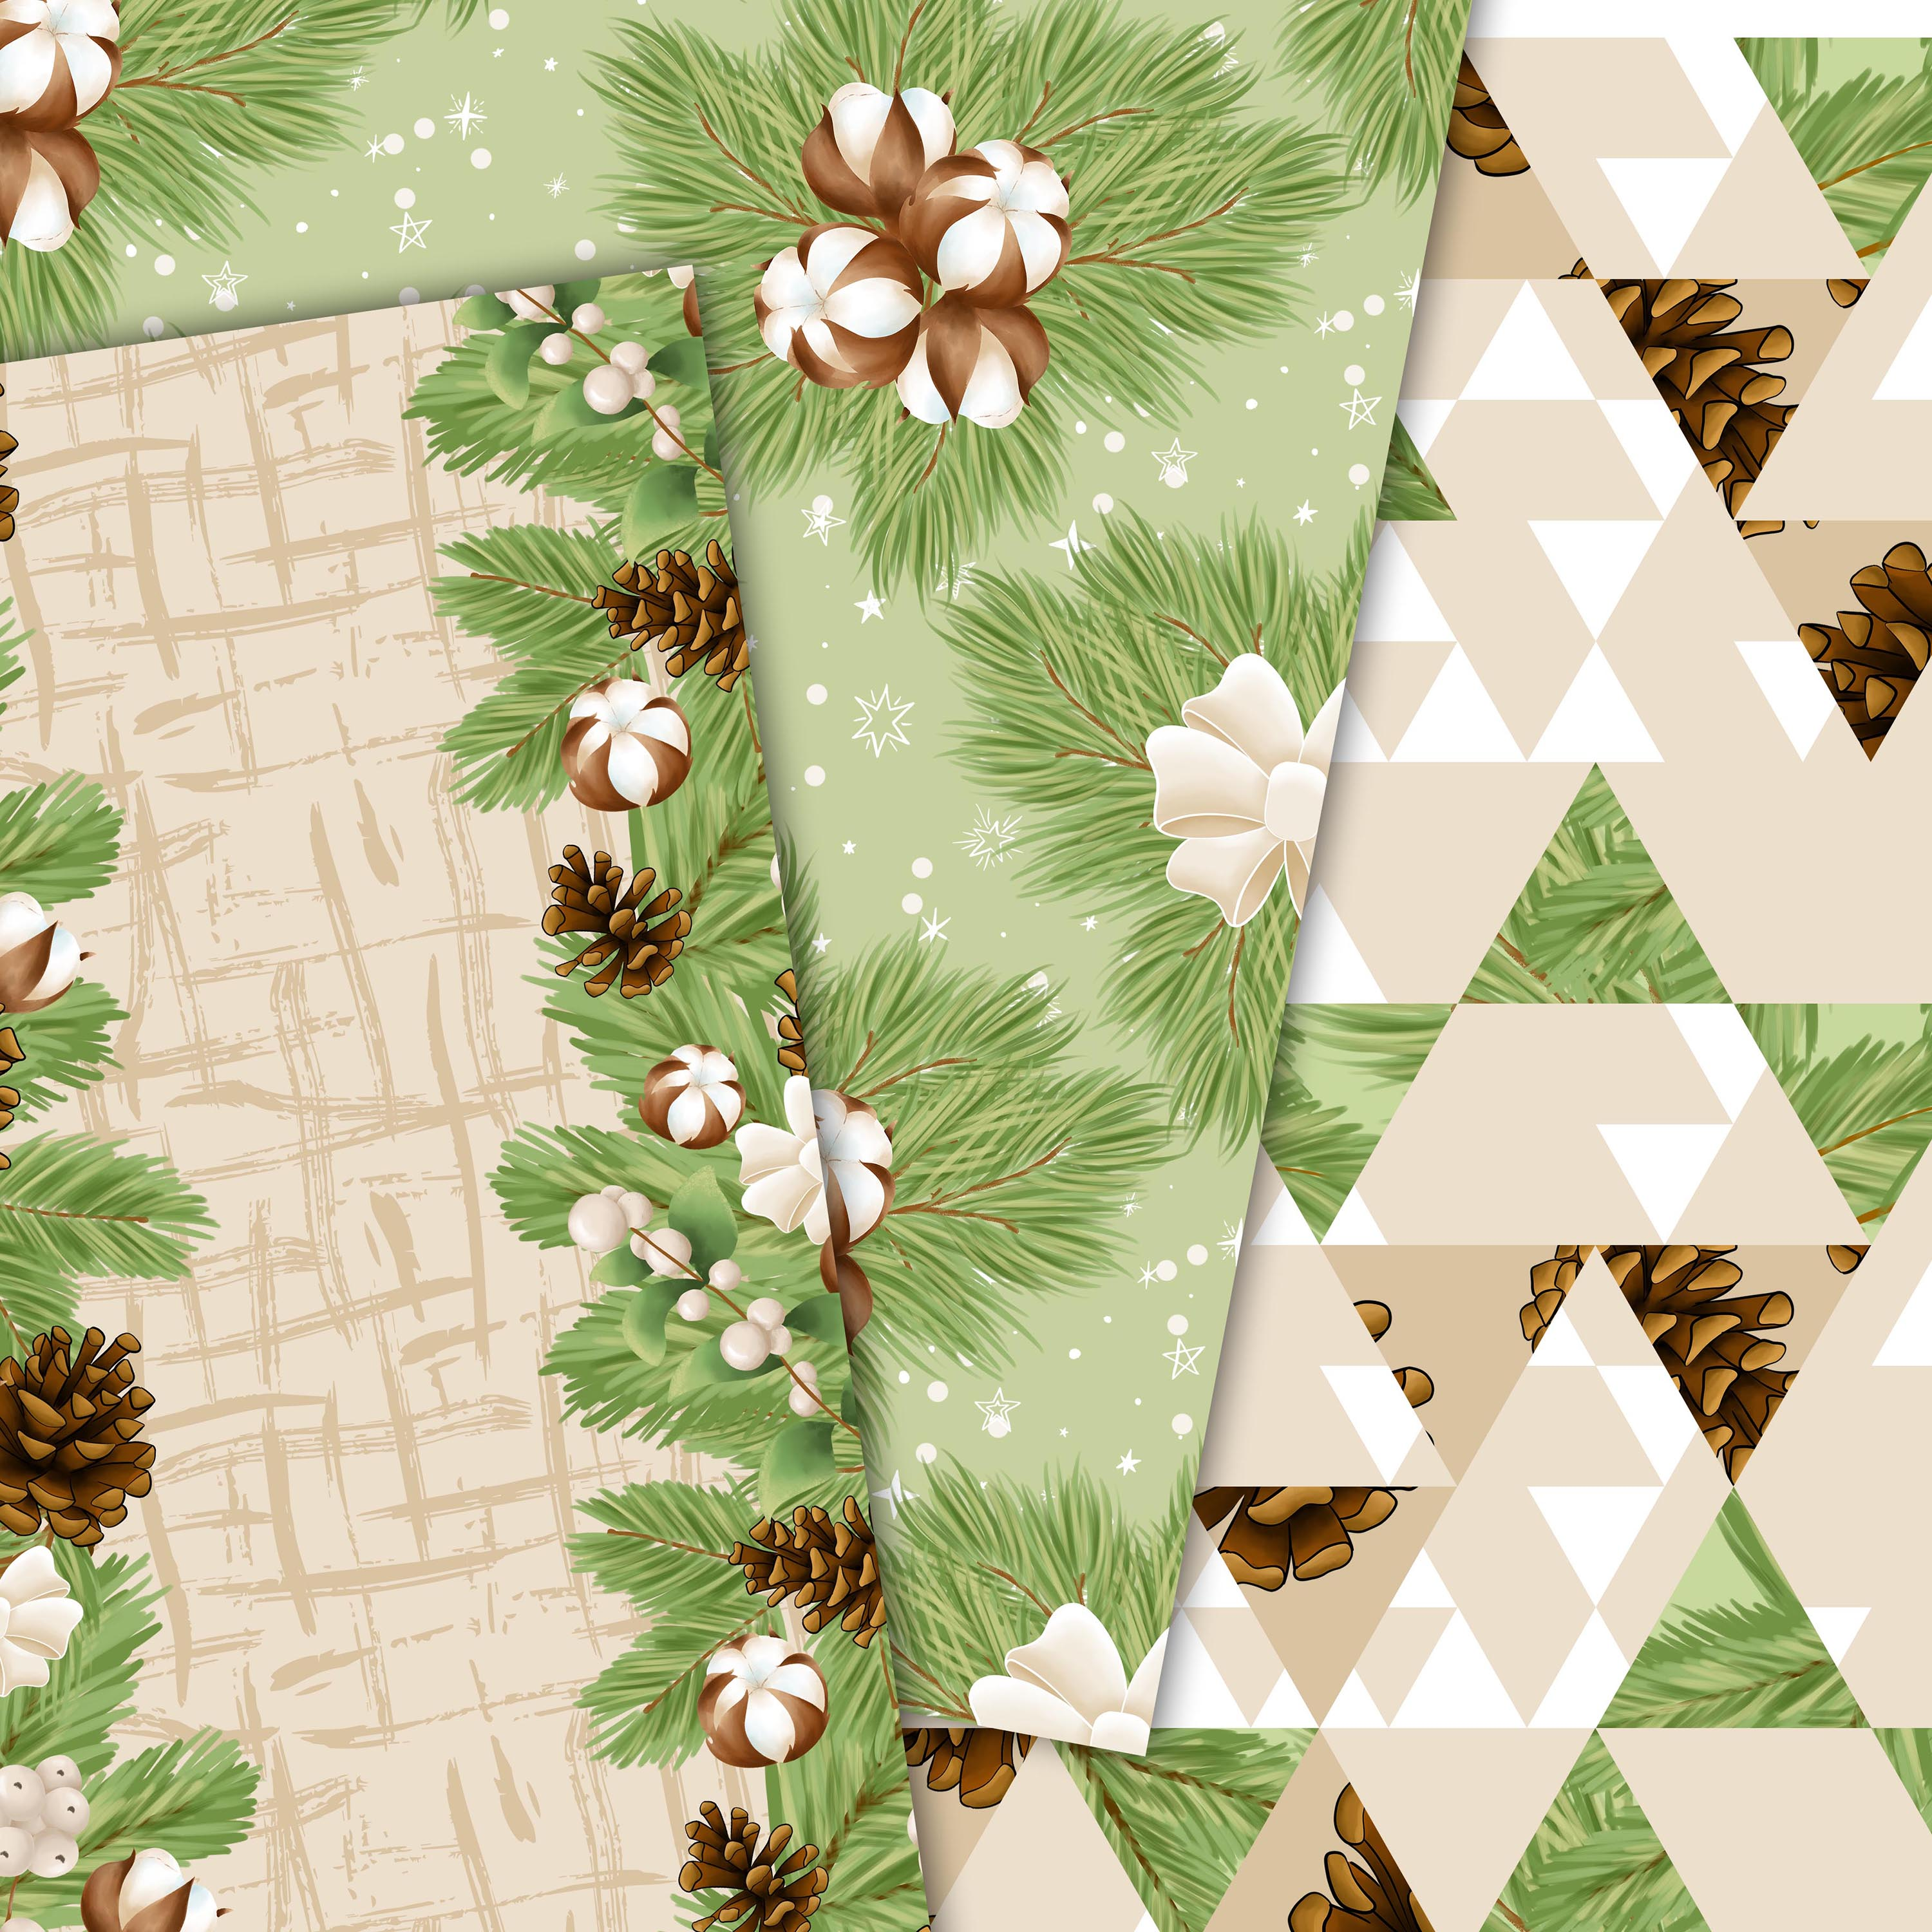 Cotton winter patterns example image 3